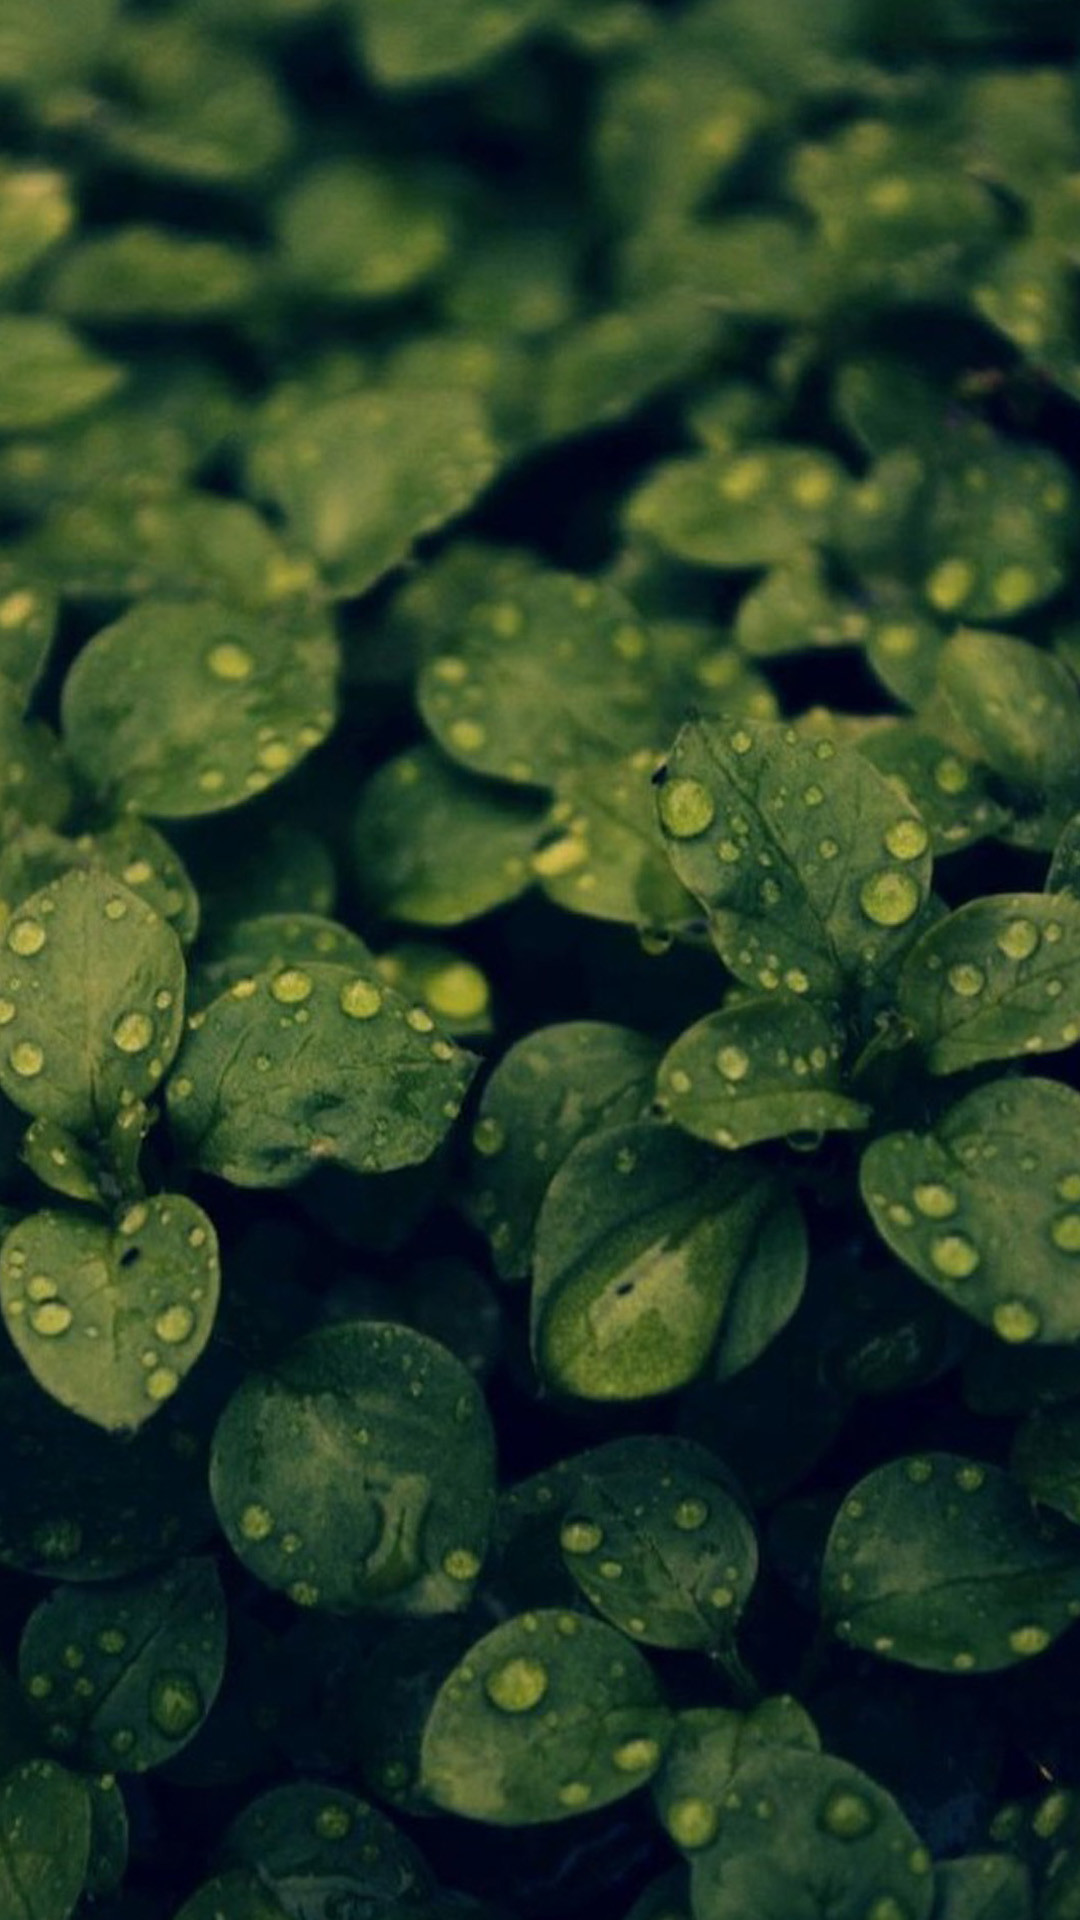 1080x1920 ... HD green leaves and water drops iOS 9 Wallpaper iOS 9 Wallpaper HD